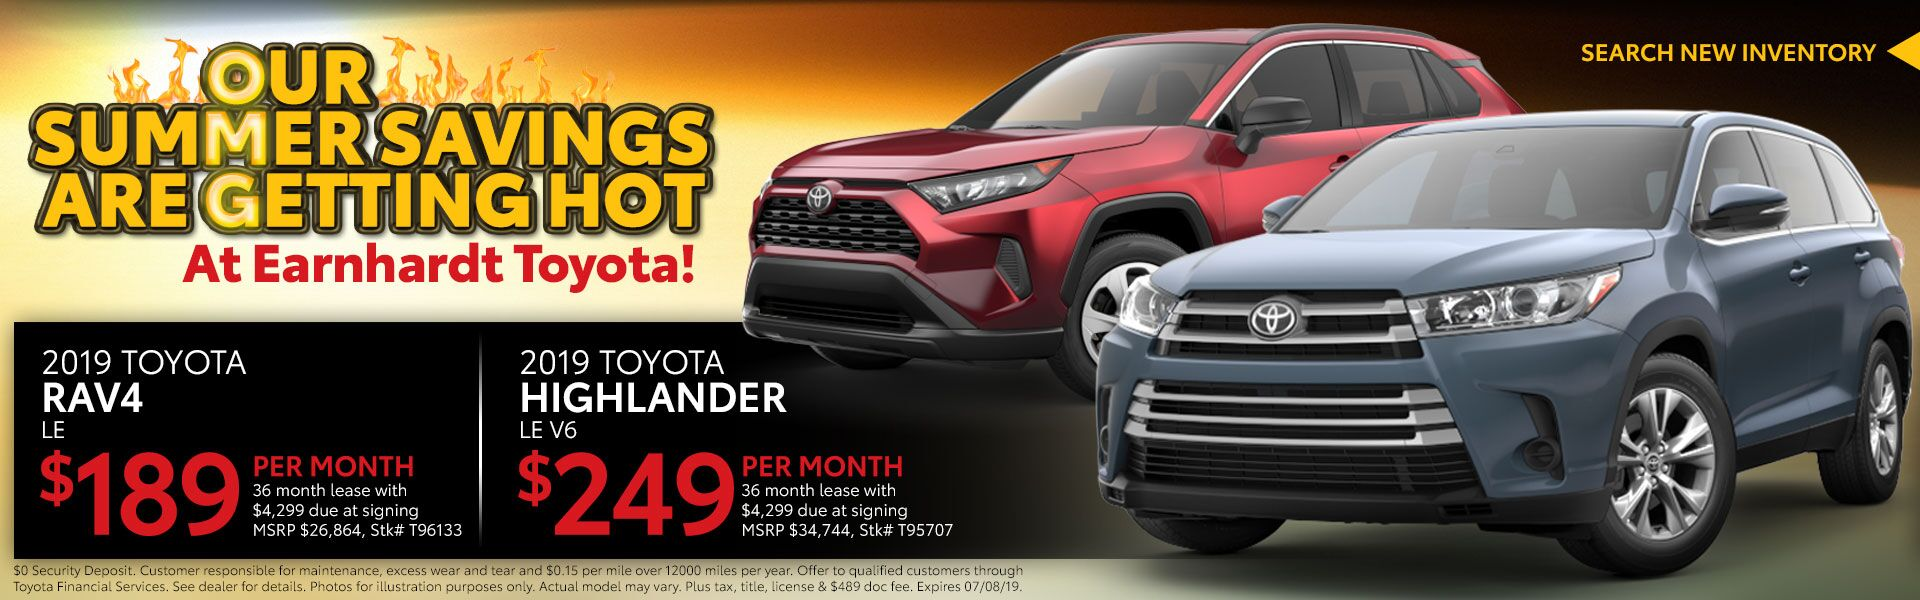 2019 RAV4 or 2019 Highlander